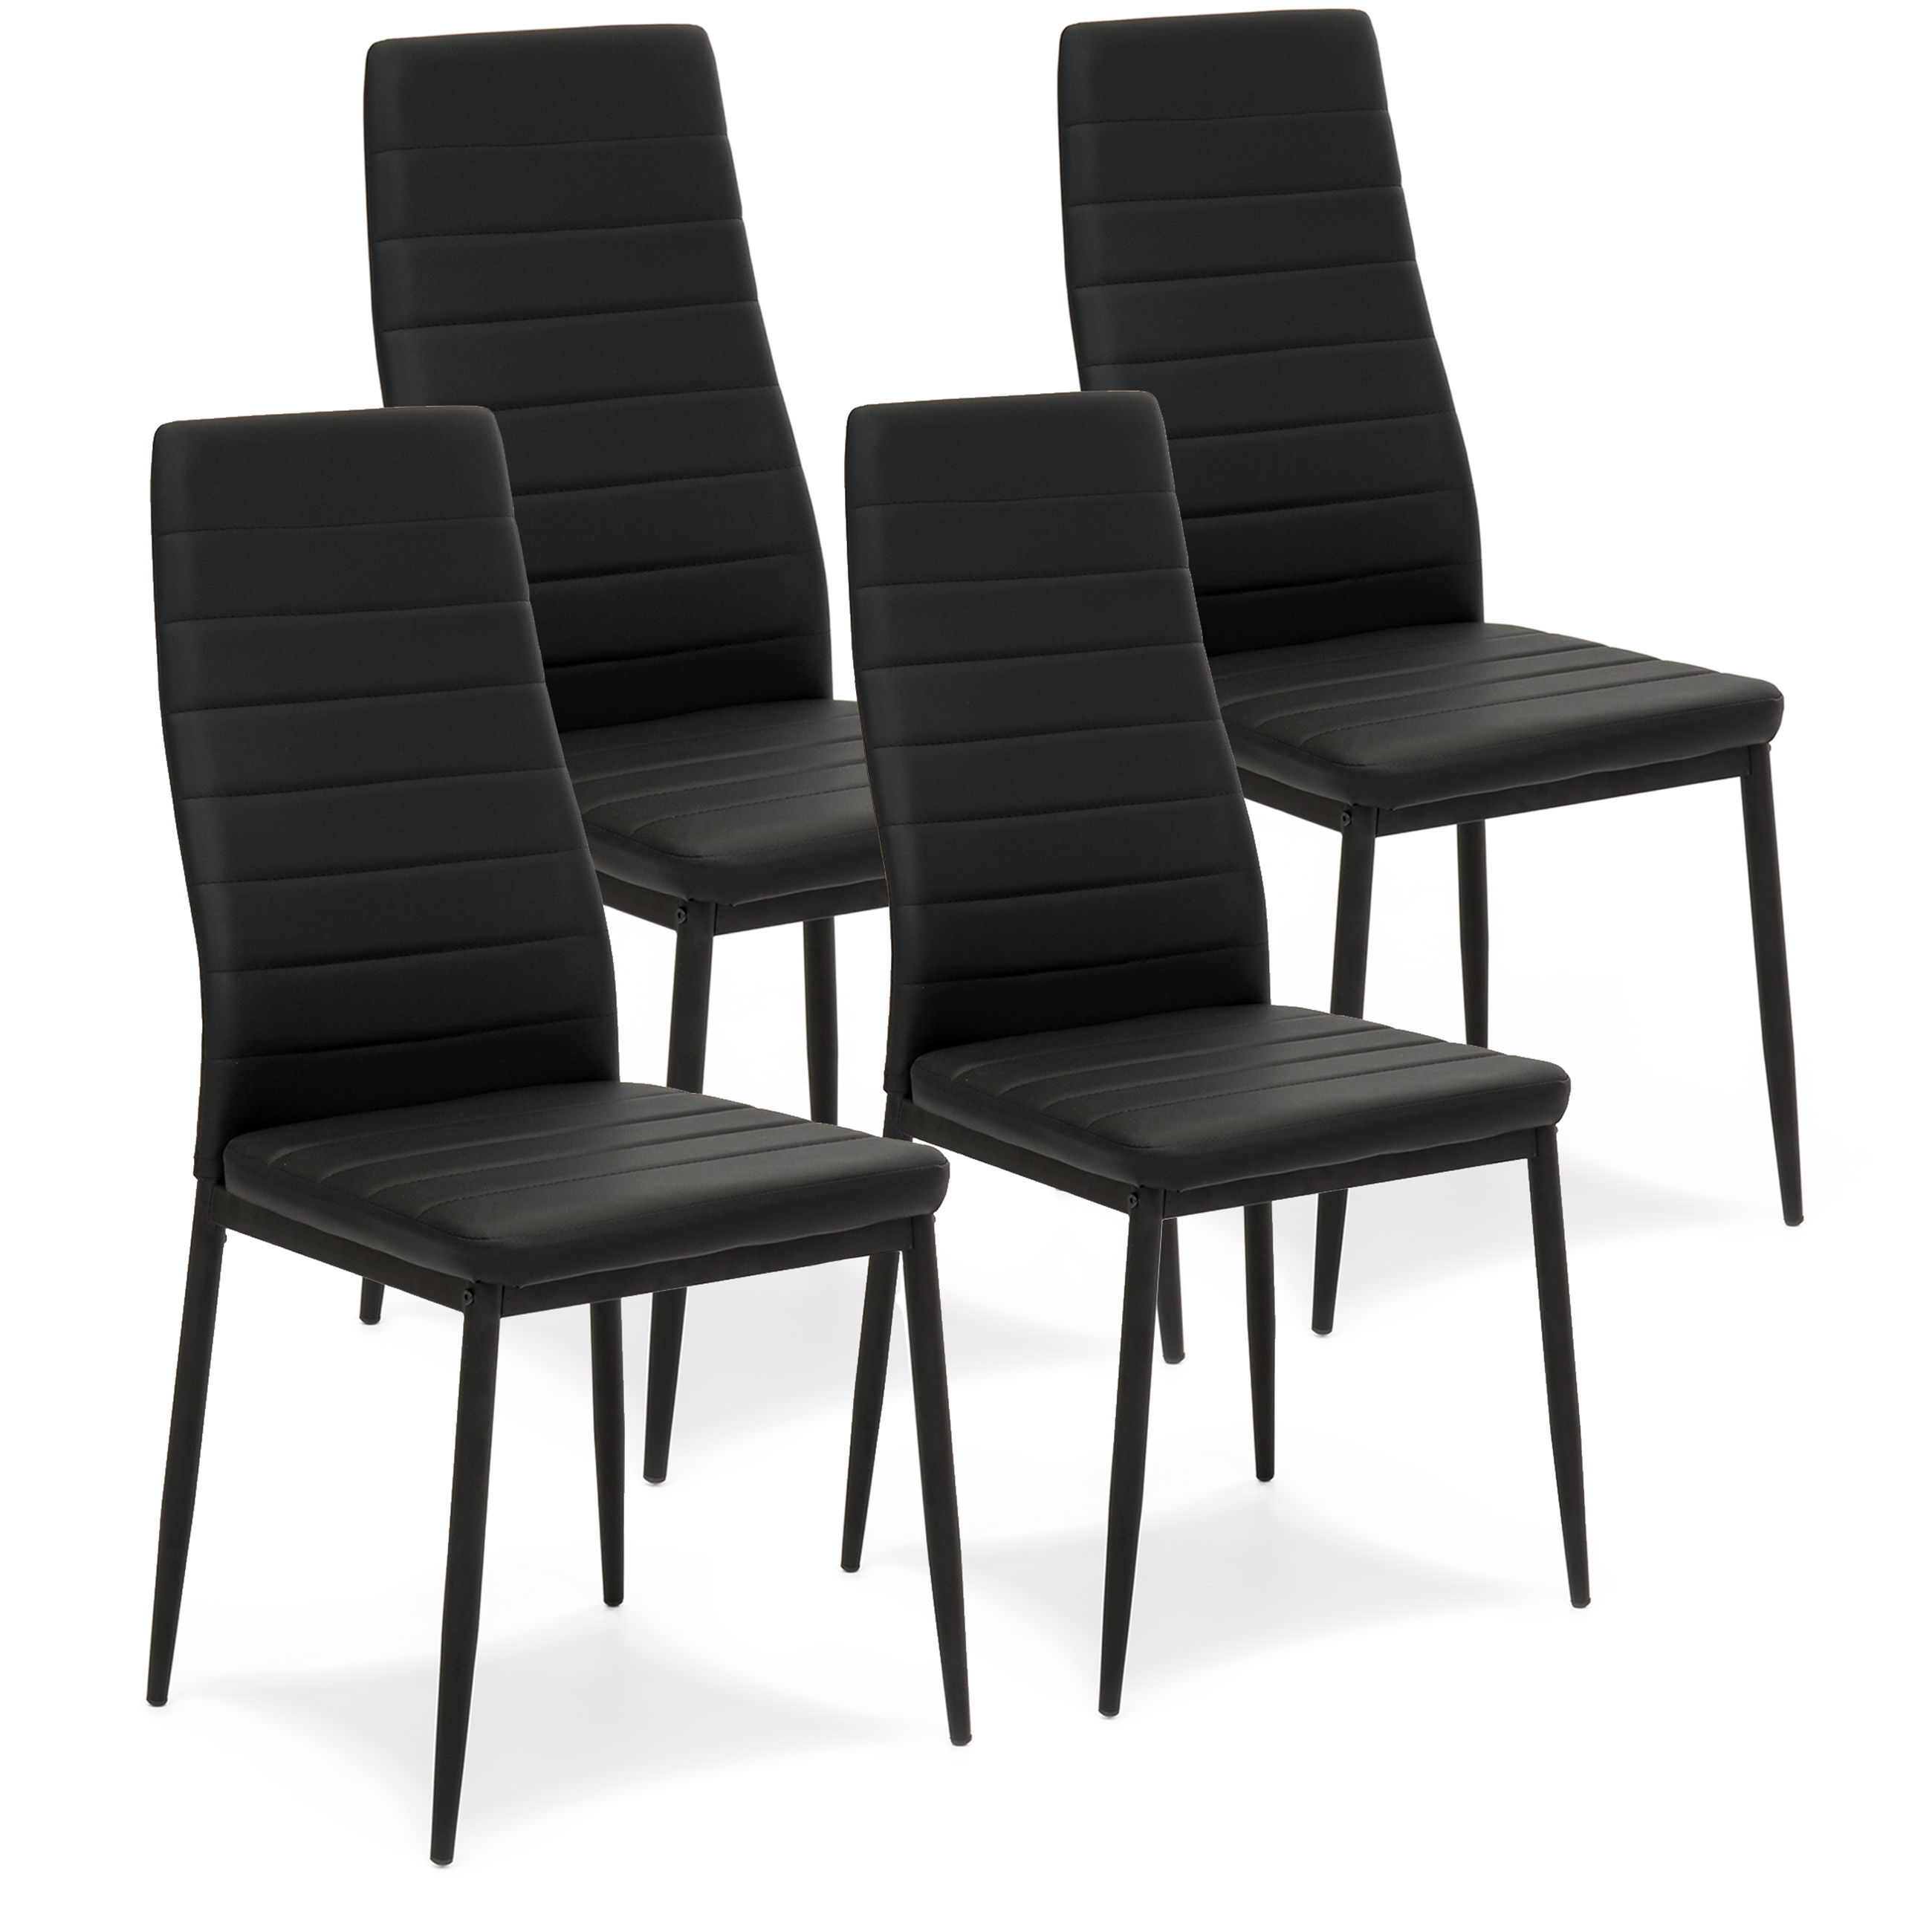 Best Choice Products Set of 4 Modern High Back Faux Leather Dining Chairs - Black